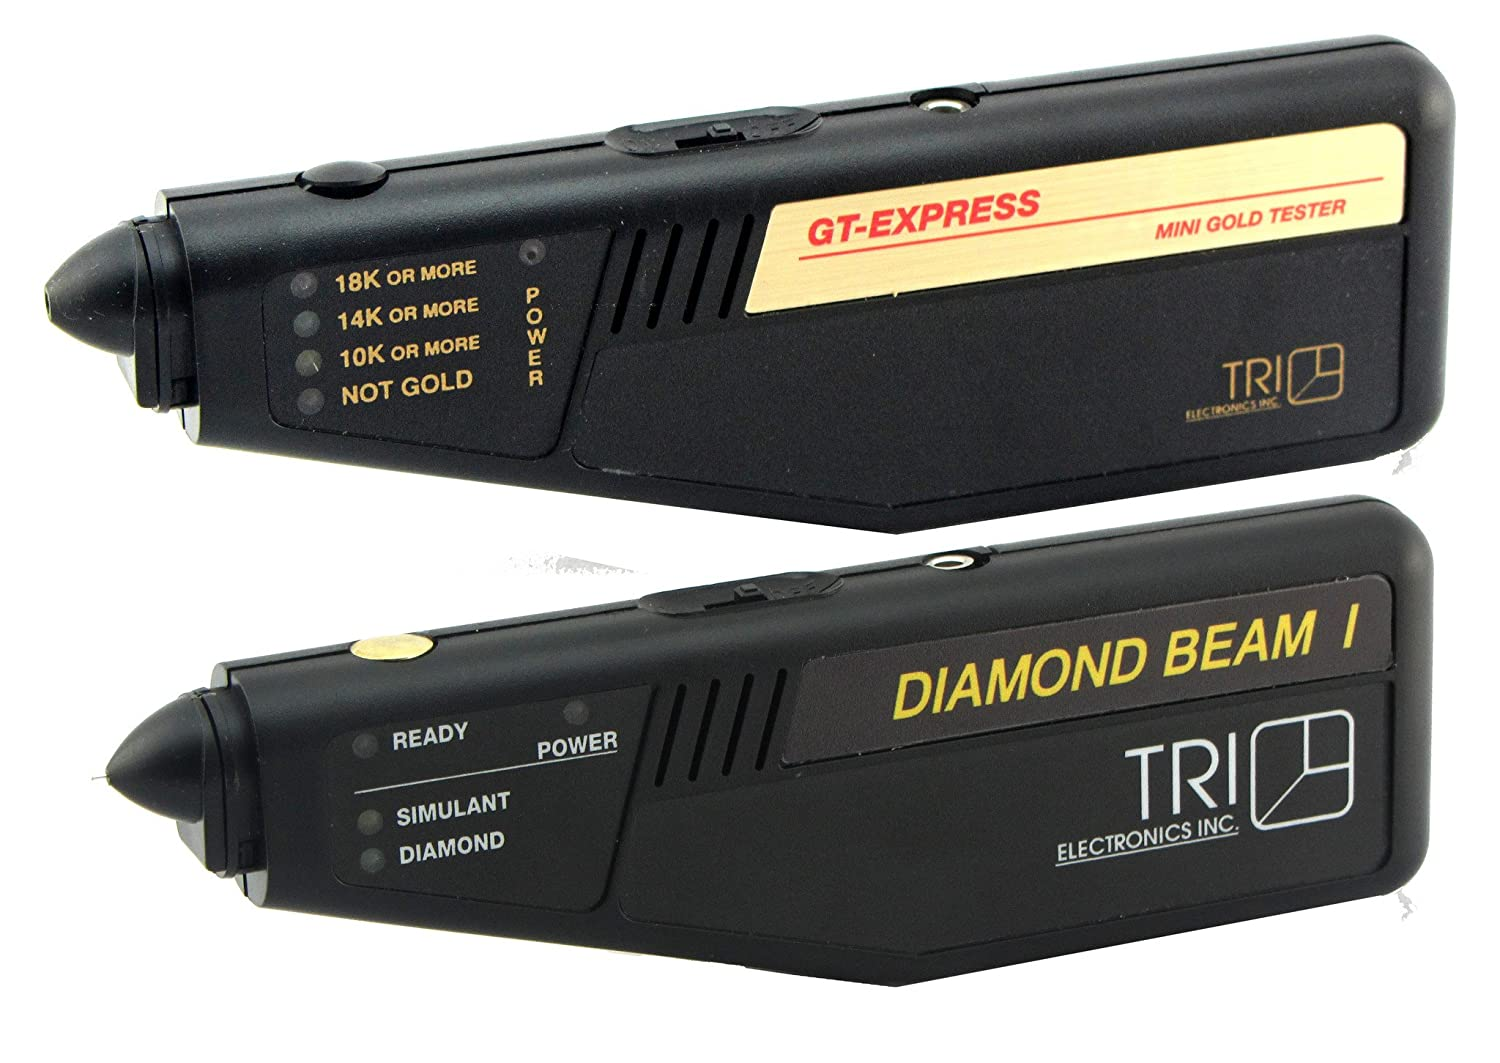 TRI Electronics GT-Express Mini Electronic Gold Tester & Diamond Beam I by BEST JEWELRY SUPPLY